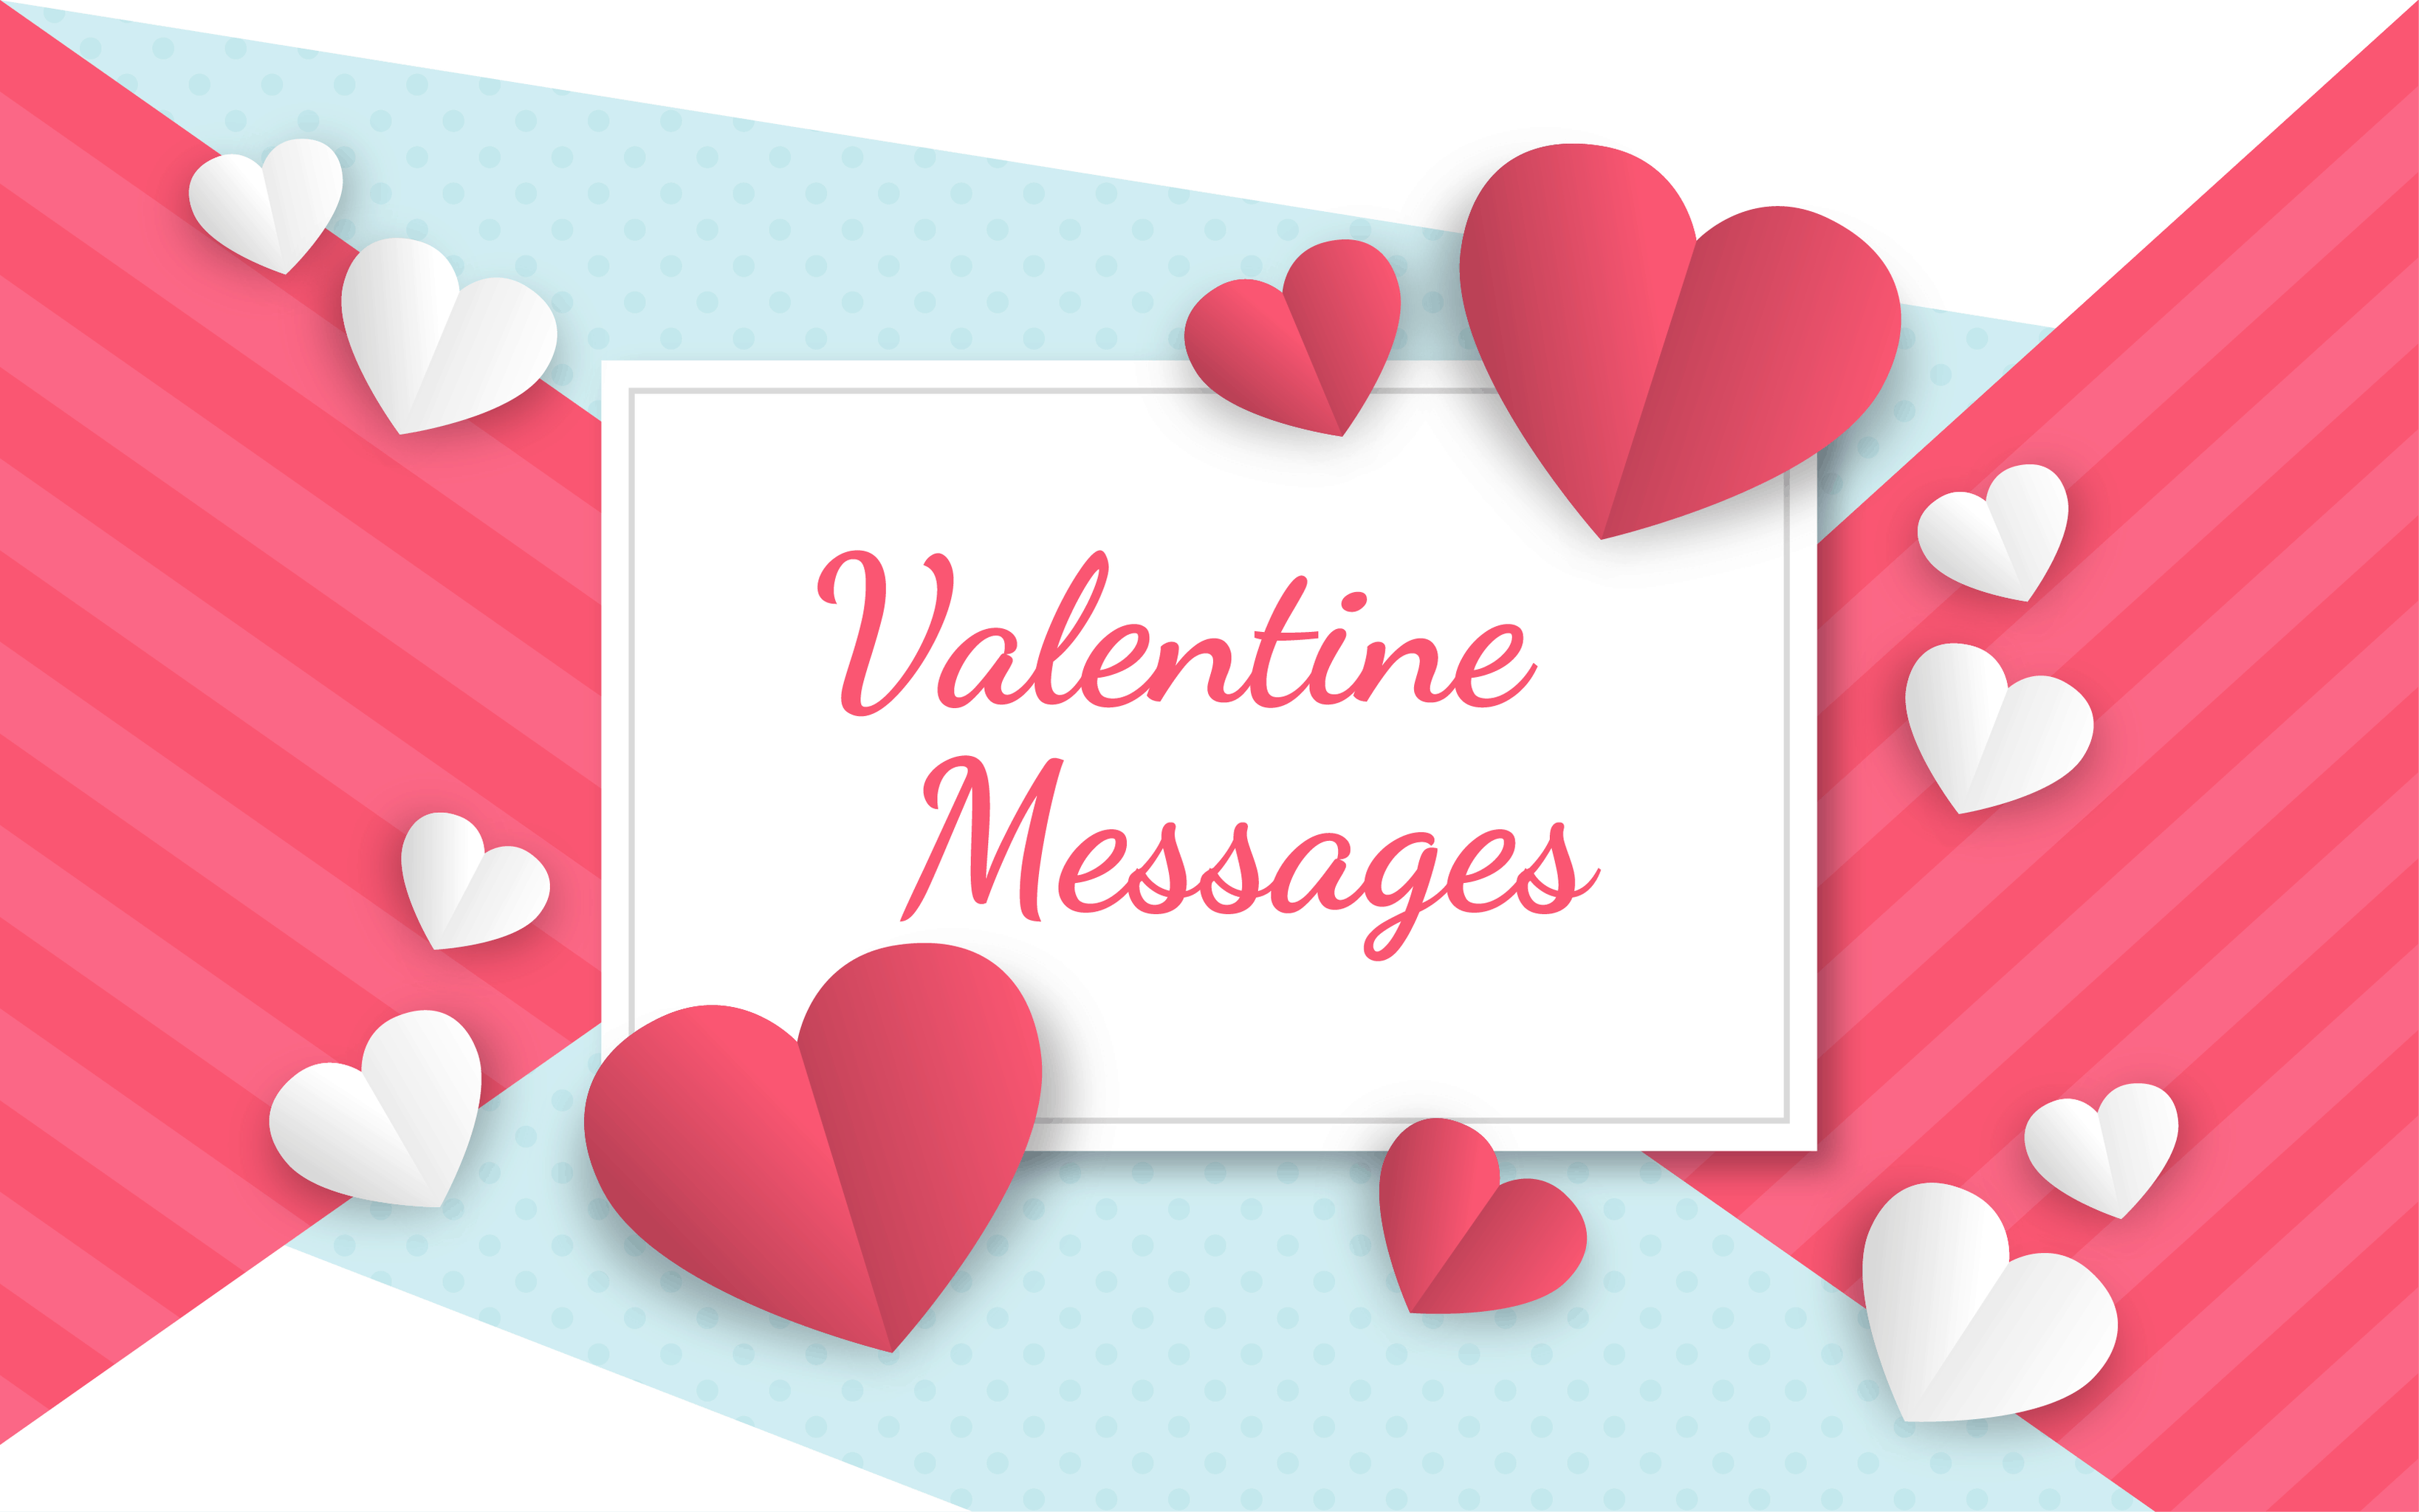 85 Romantic, Funny Valentine's Day Messages For Your Card 2021